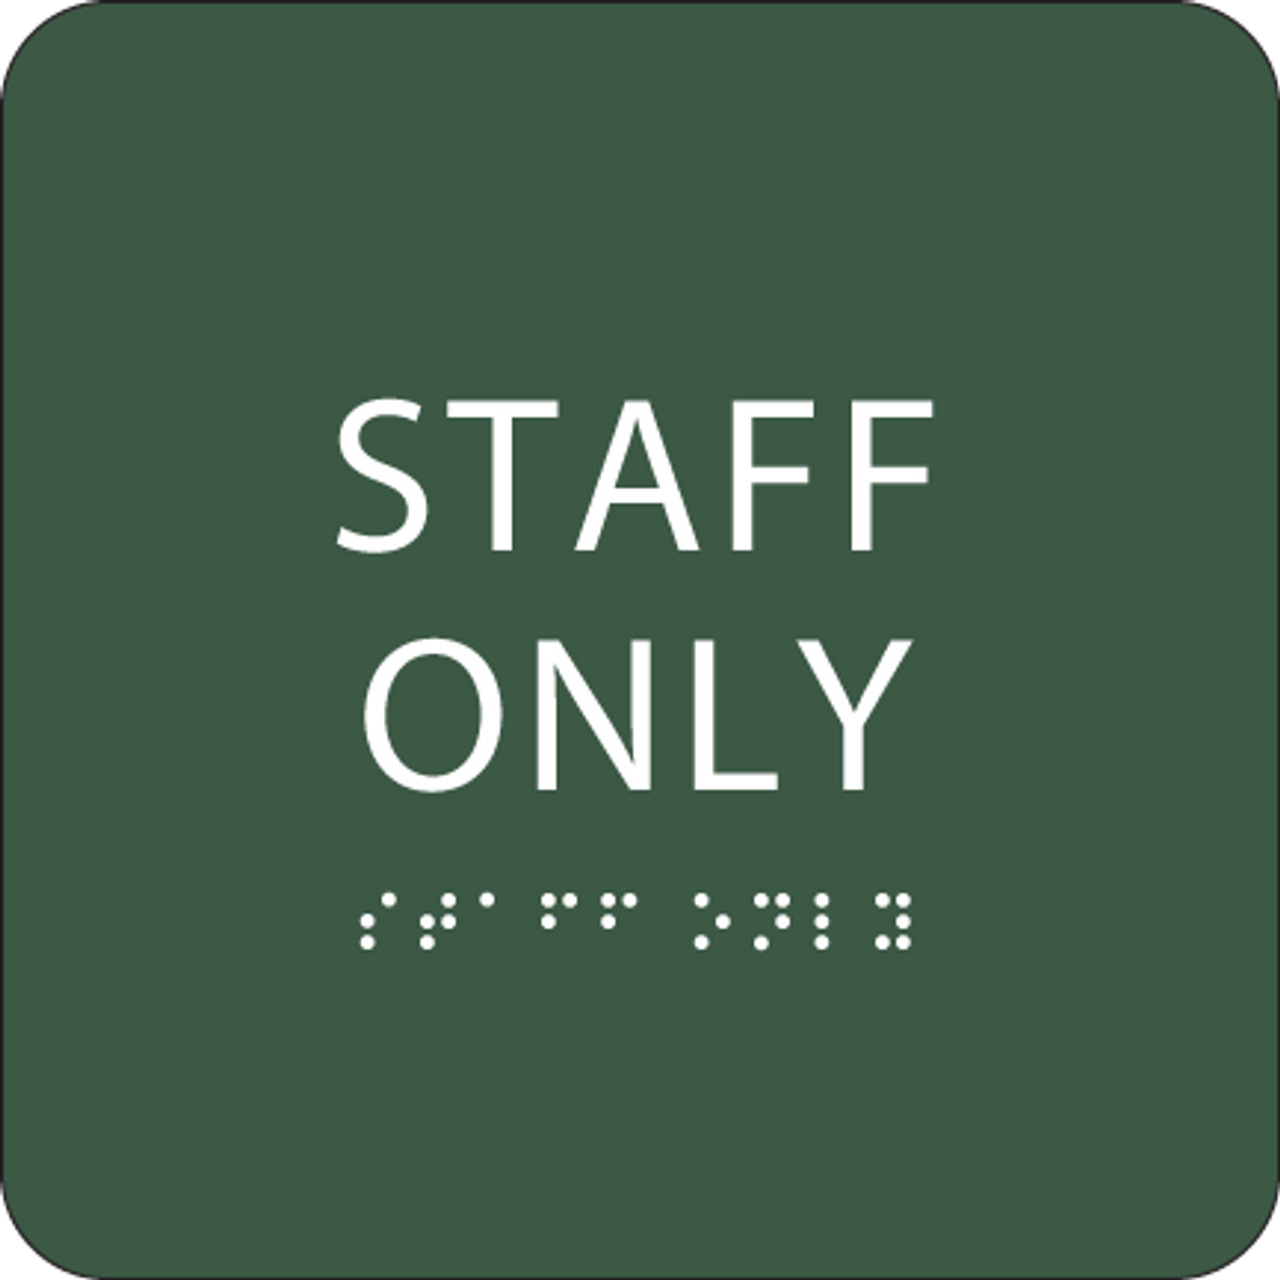 "Staff Only ADA Sign - 6"" x 6"""